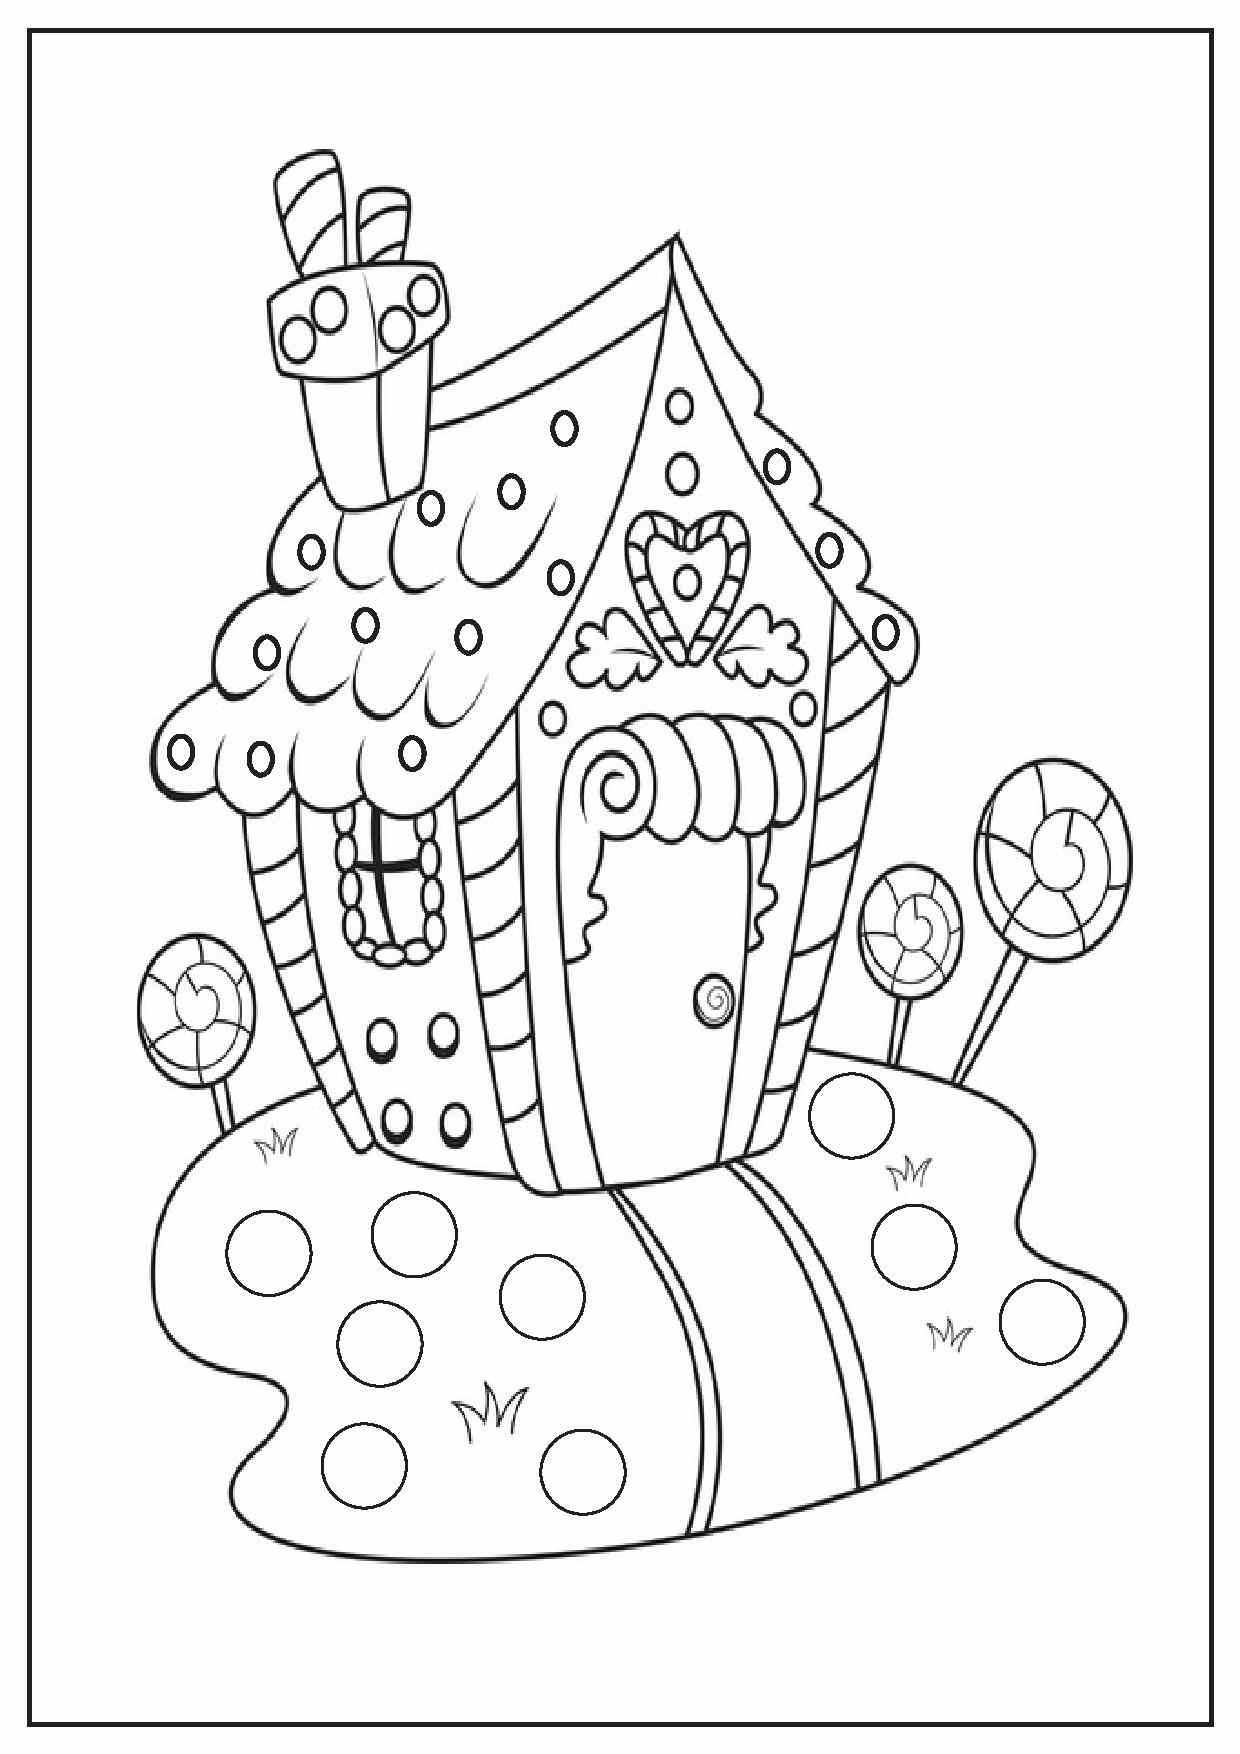 Cool Coloring Pages That You Can Print